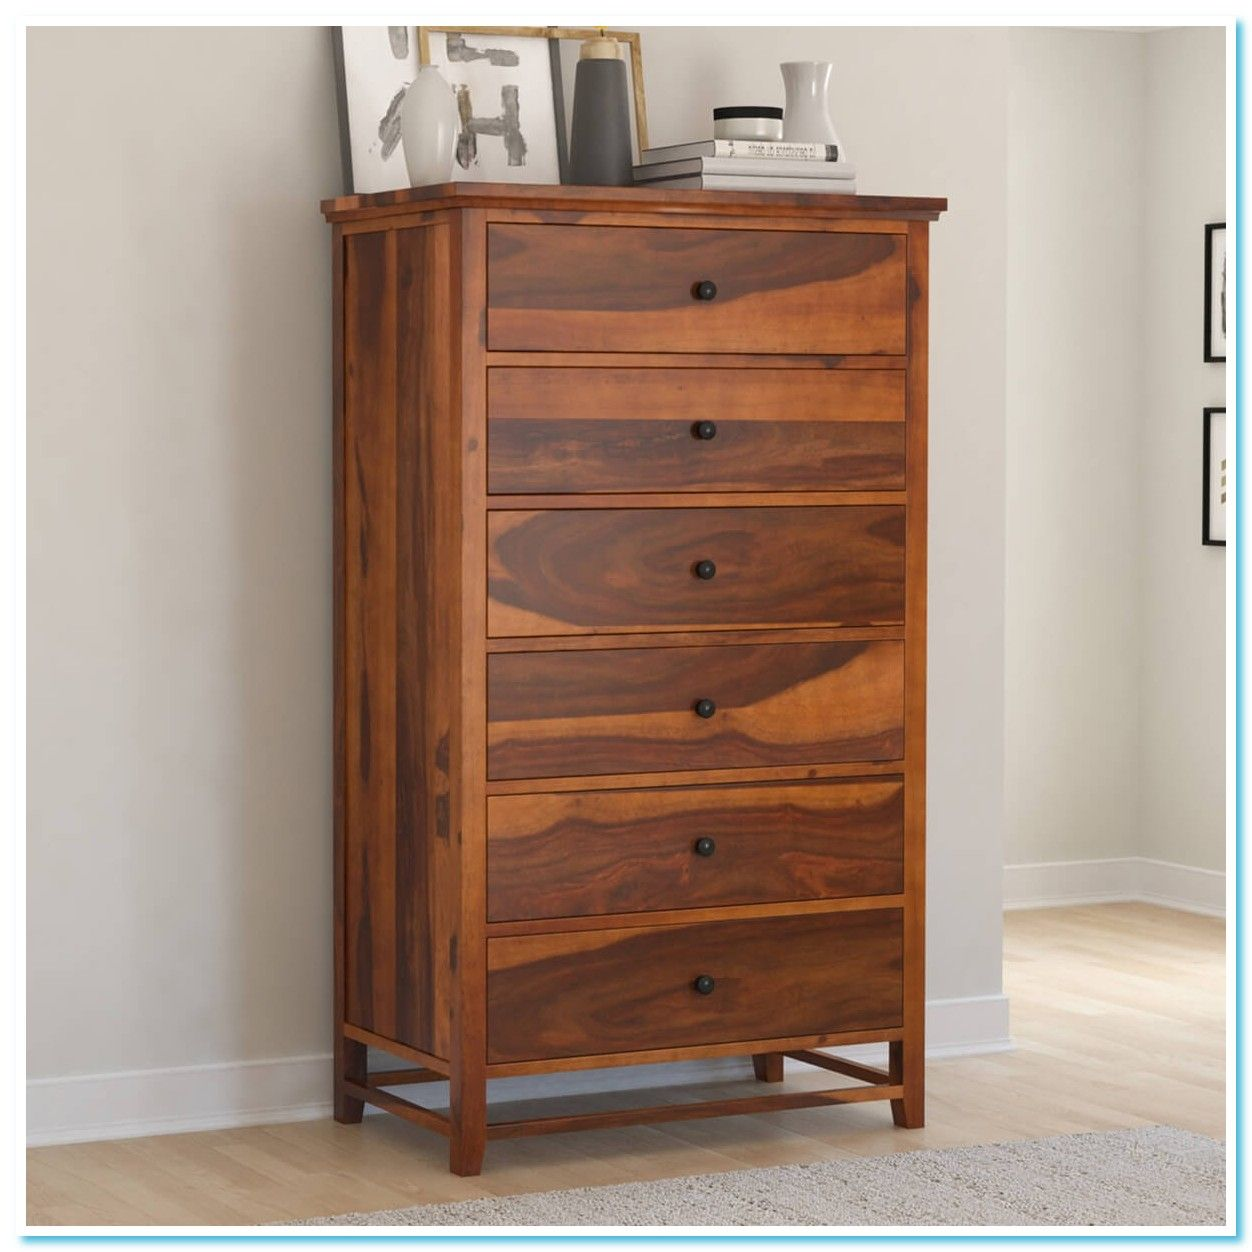 42 Reference Of Baby Dresser Solid Wood In 2020 Solid Wood Dresser Wood Dresser Wood Bedroom